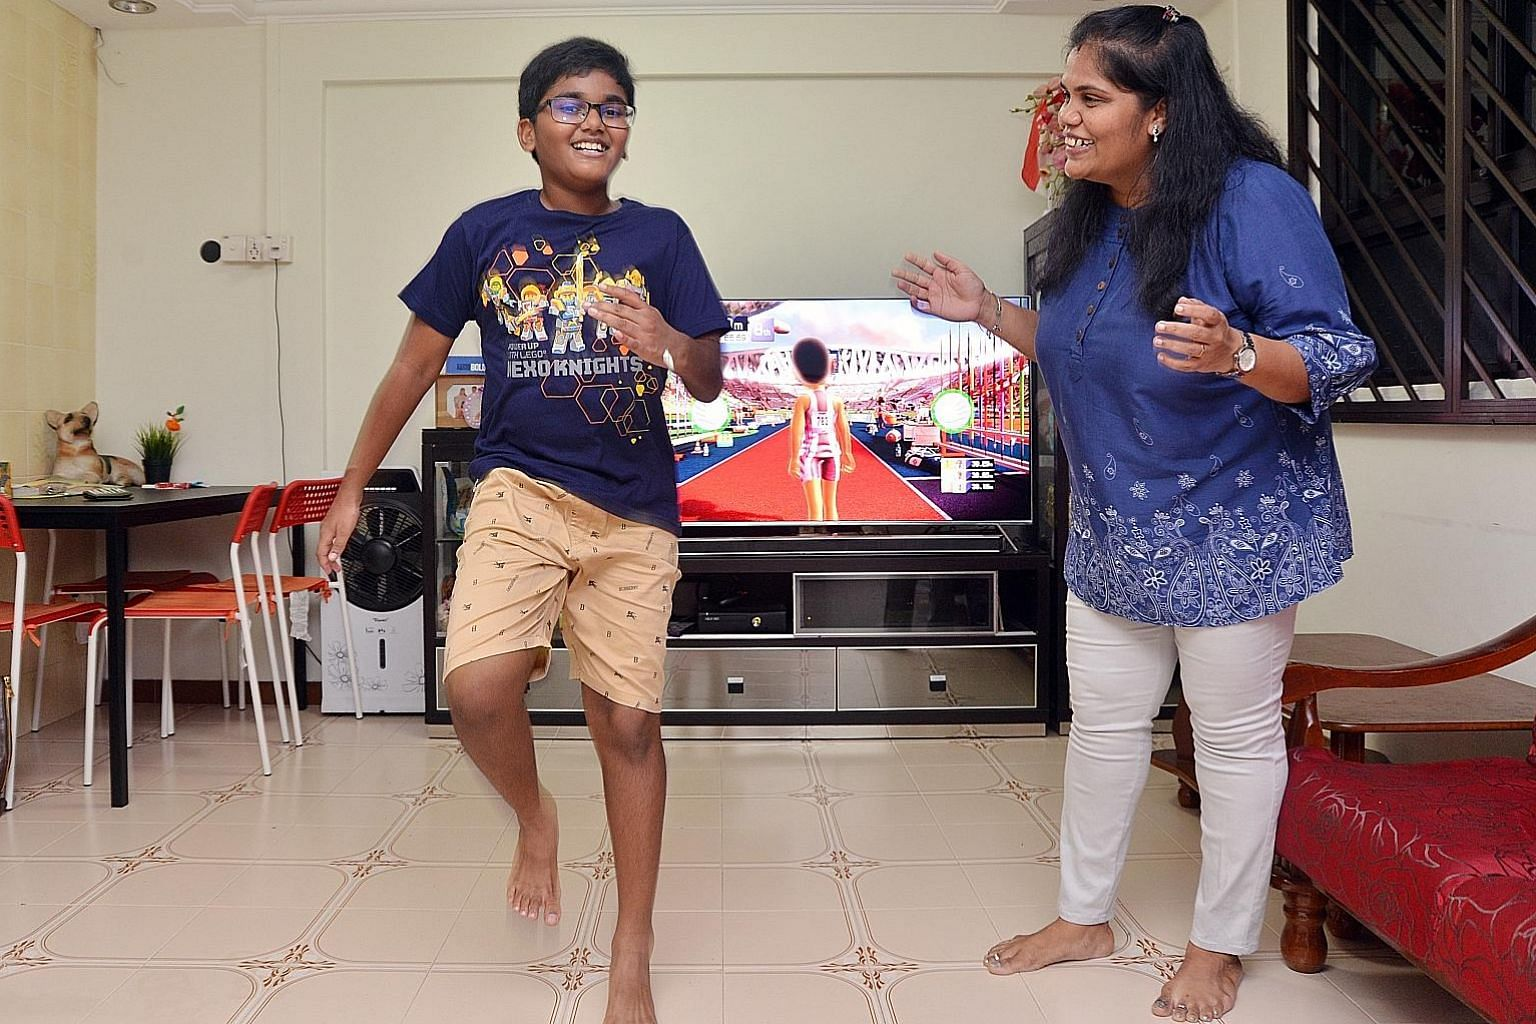 Ramachandran Nikhil, 10, and his mum, IT professional Kasi Kanimozhi. Nikhil is playing a video game that requires him to be active.